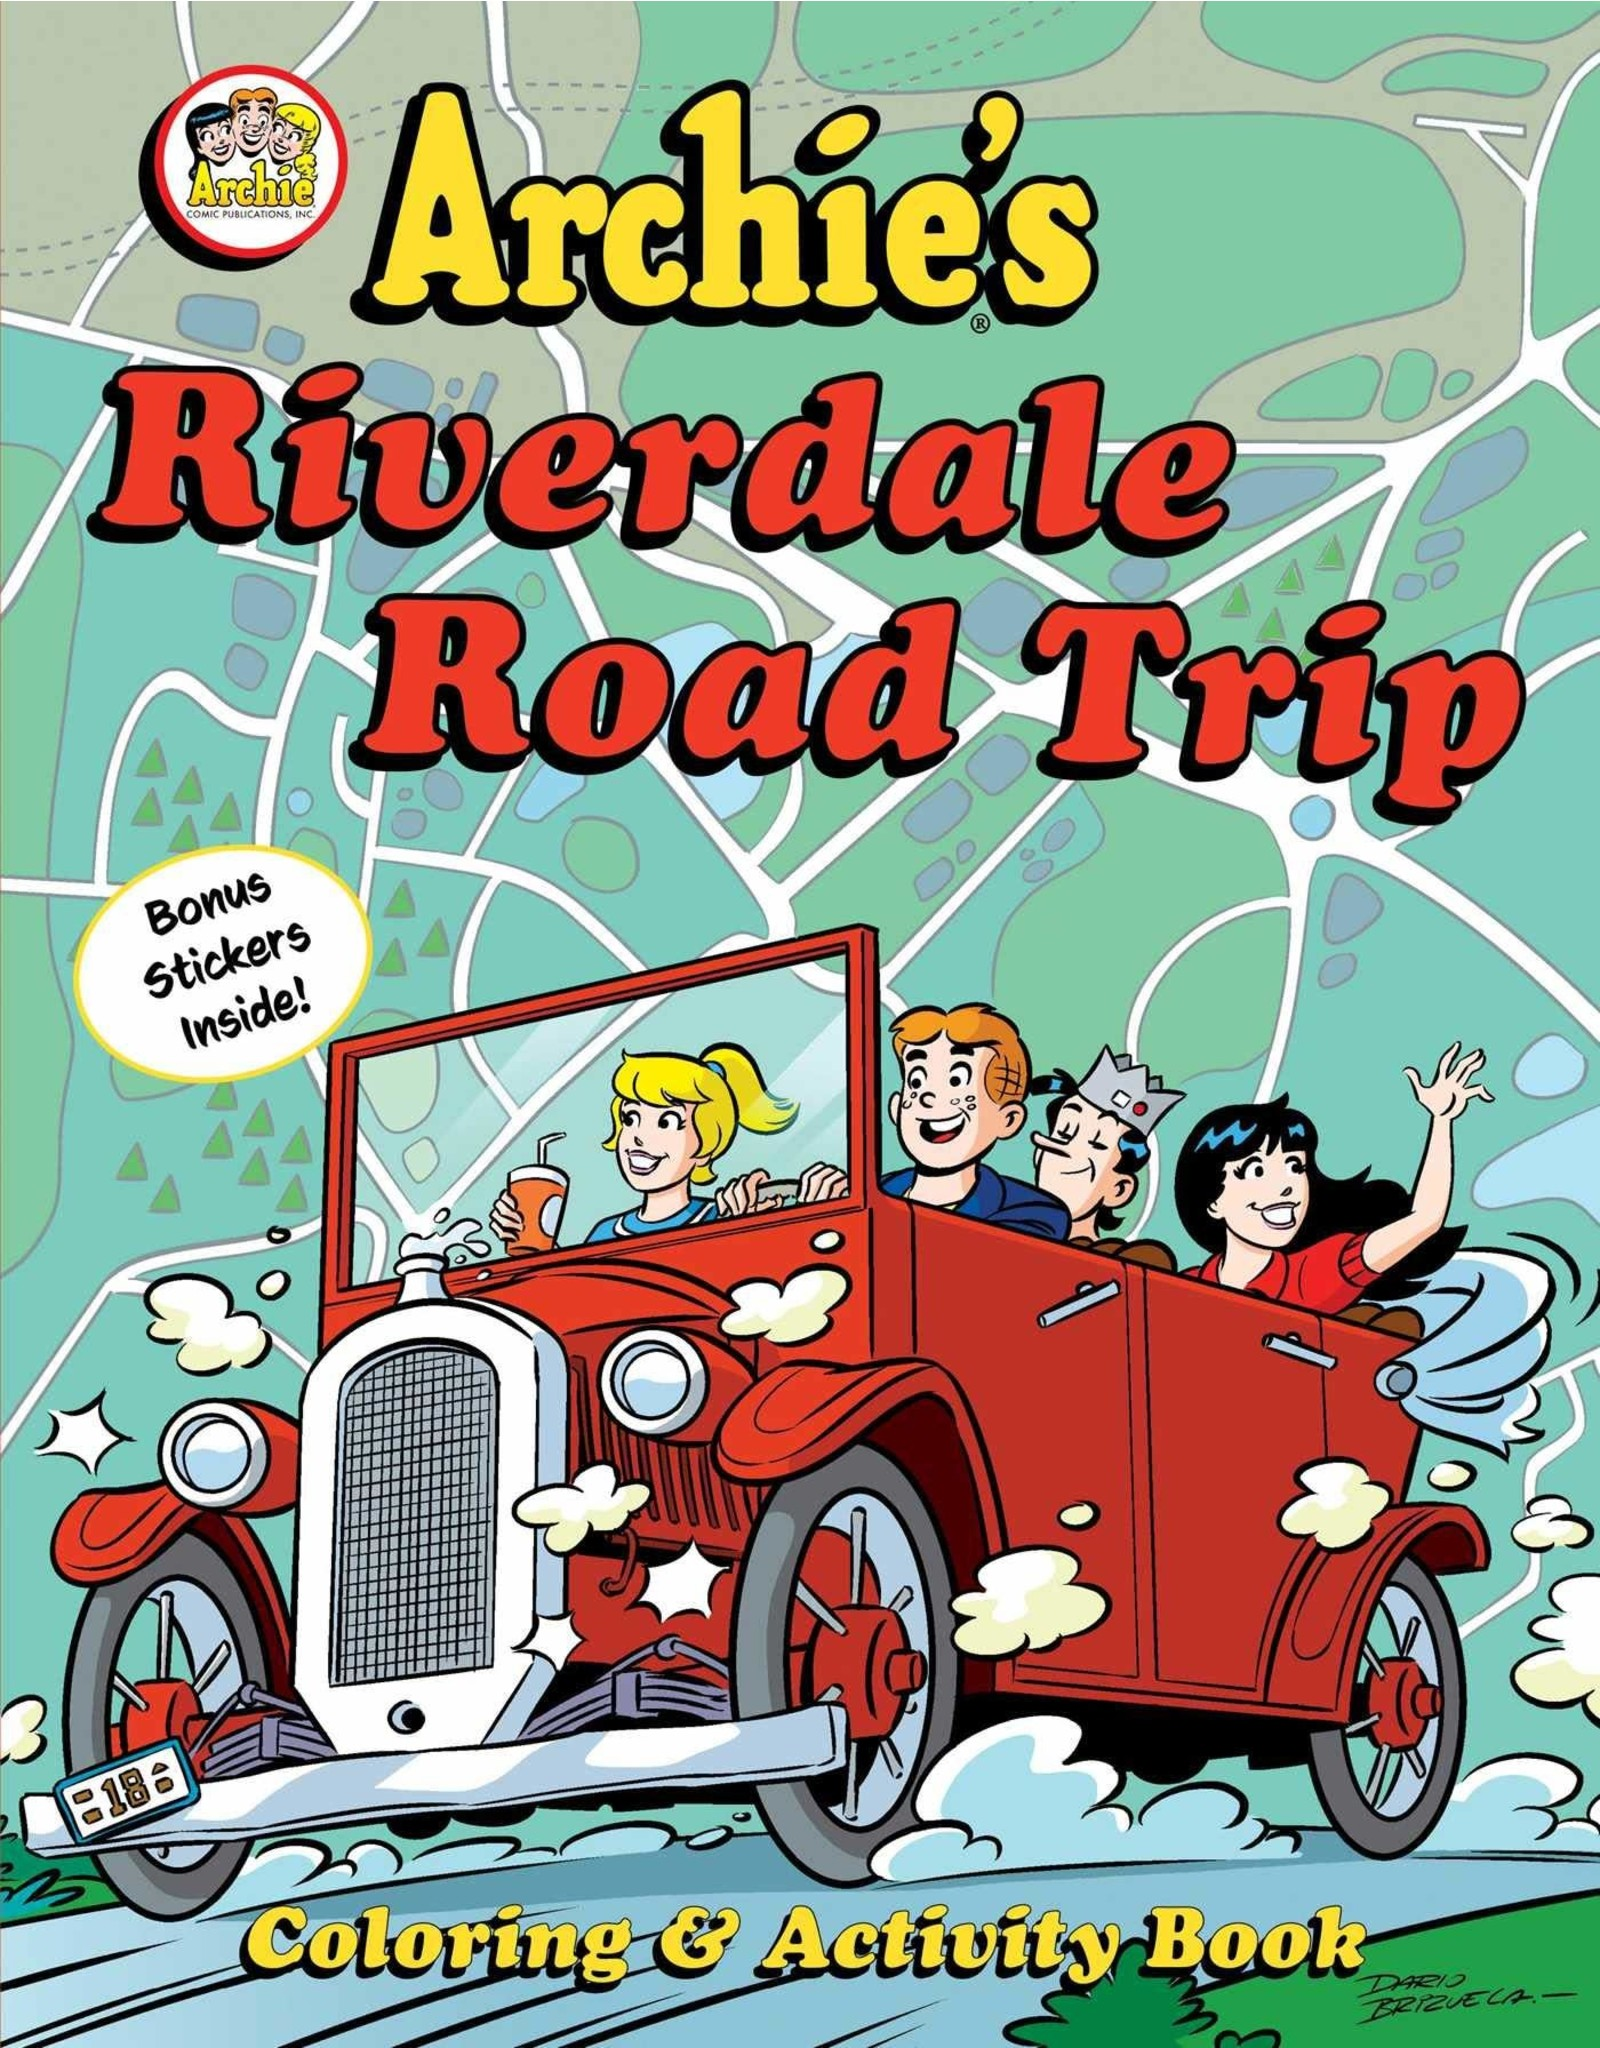 ARCHIES RIVERDALE ROAD TRIP ACTIVITY BOOK